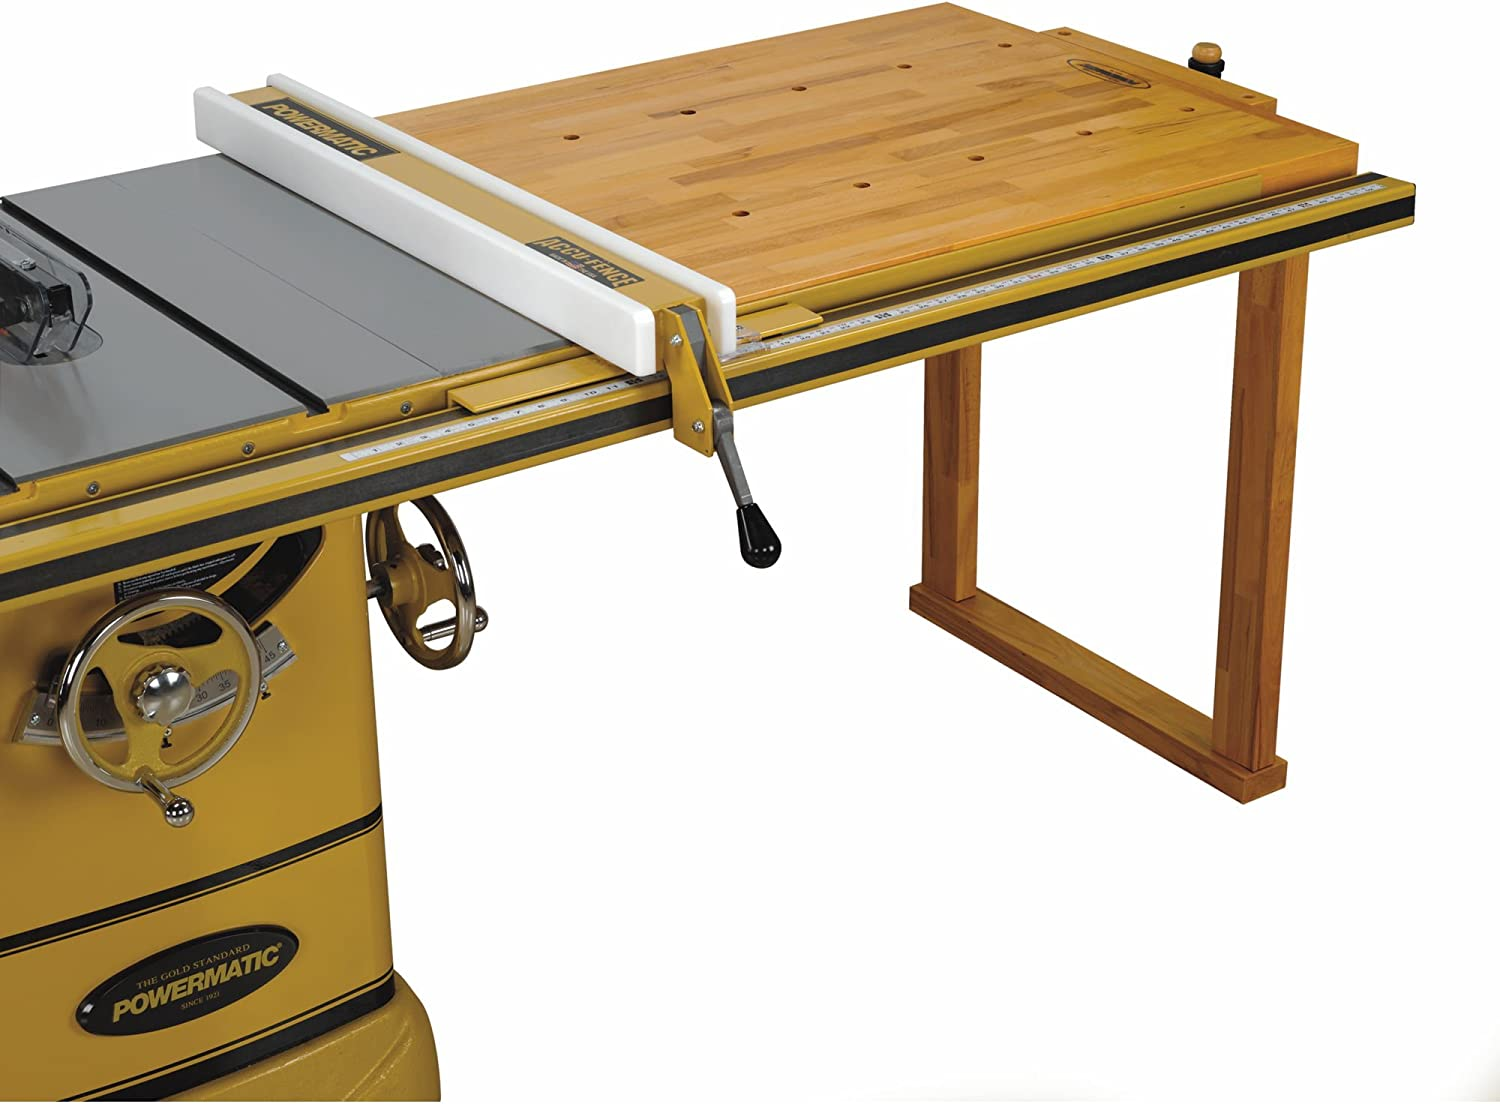 Powermatic PM2 Table Saws product image 2